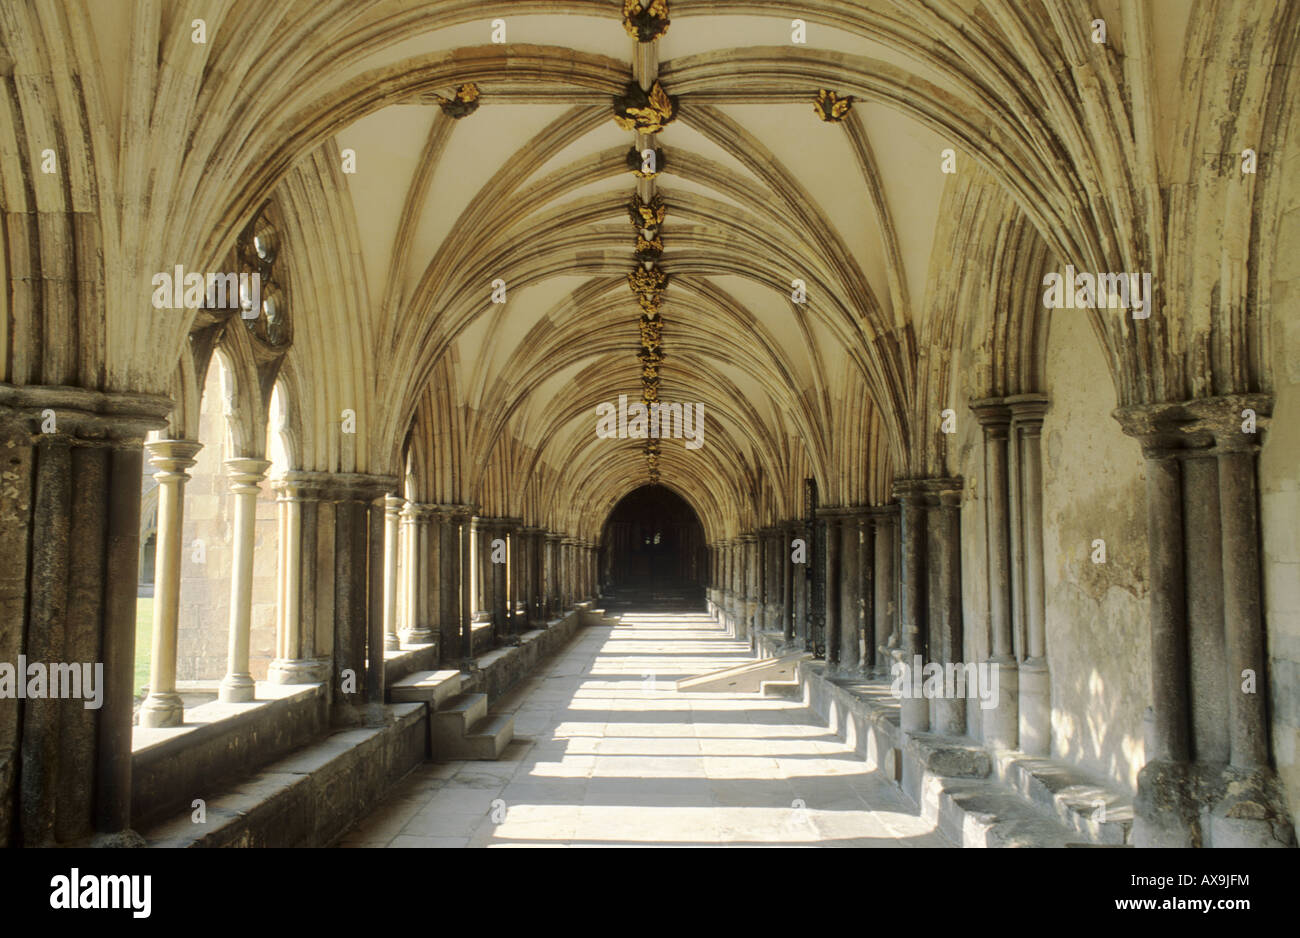 norwich cathedral cloisters medieval architecture vaulting